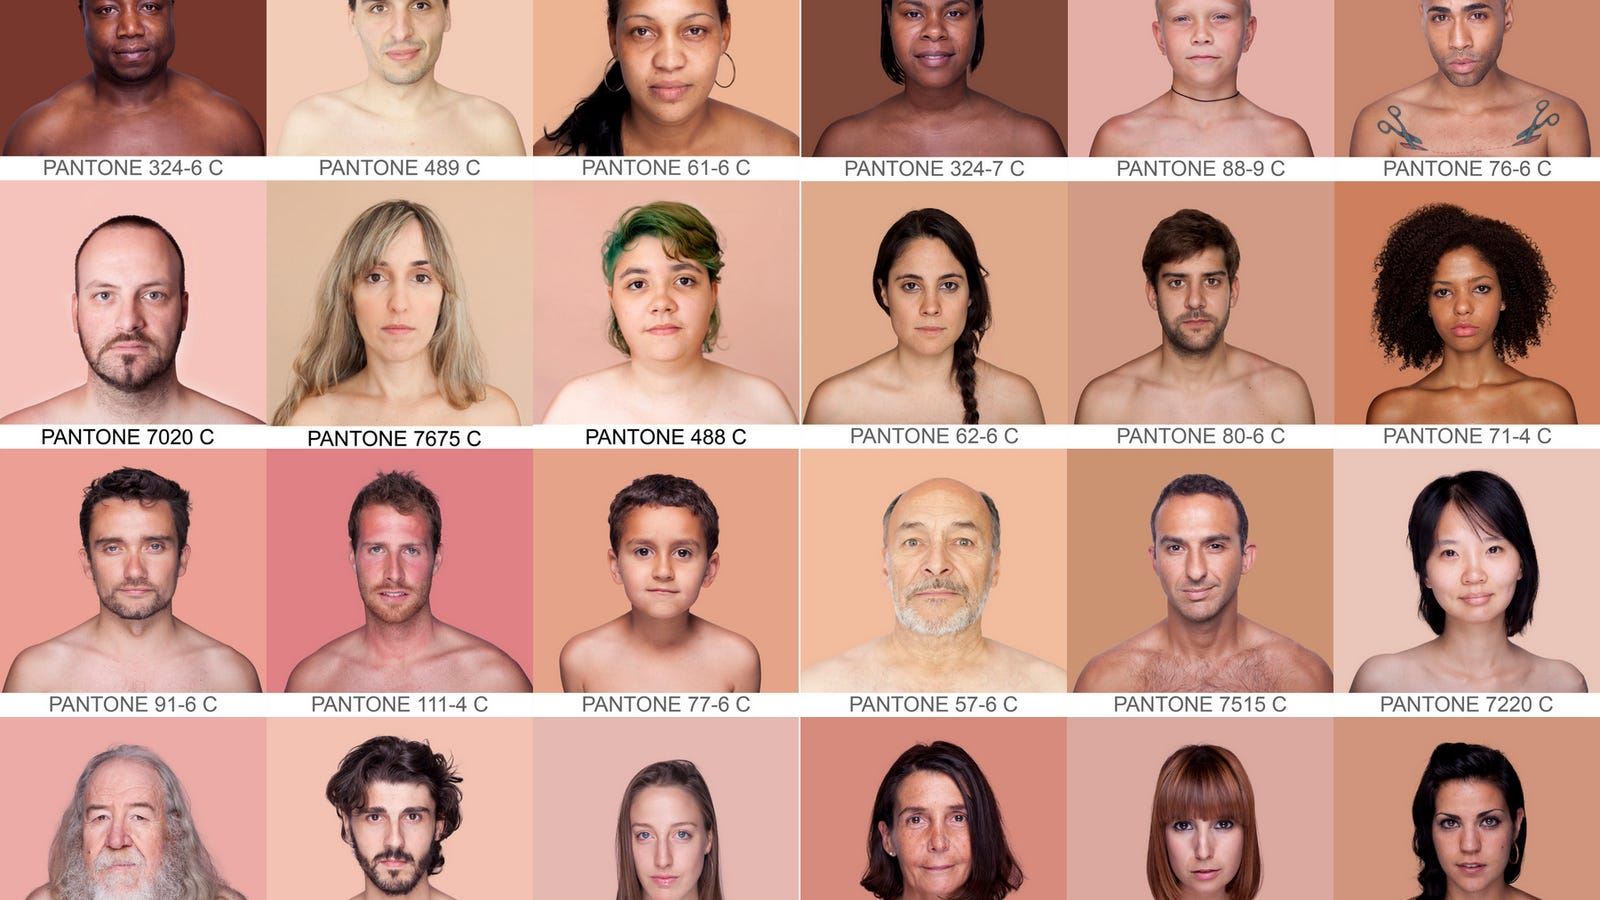 The pantone chart of every human skin color nvjuhfo Image collections